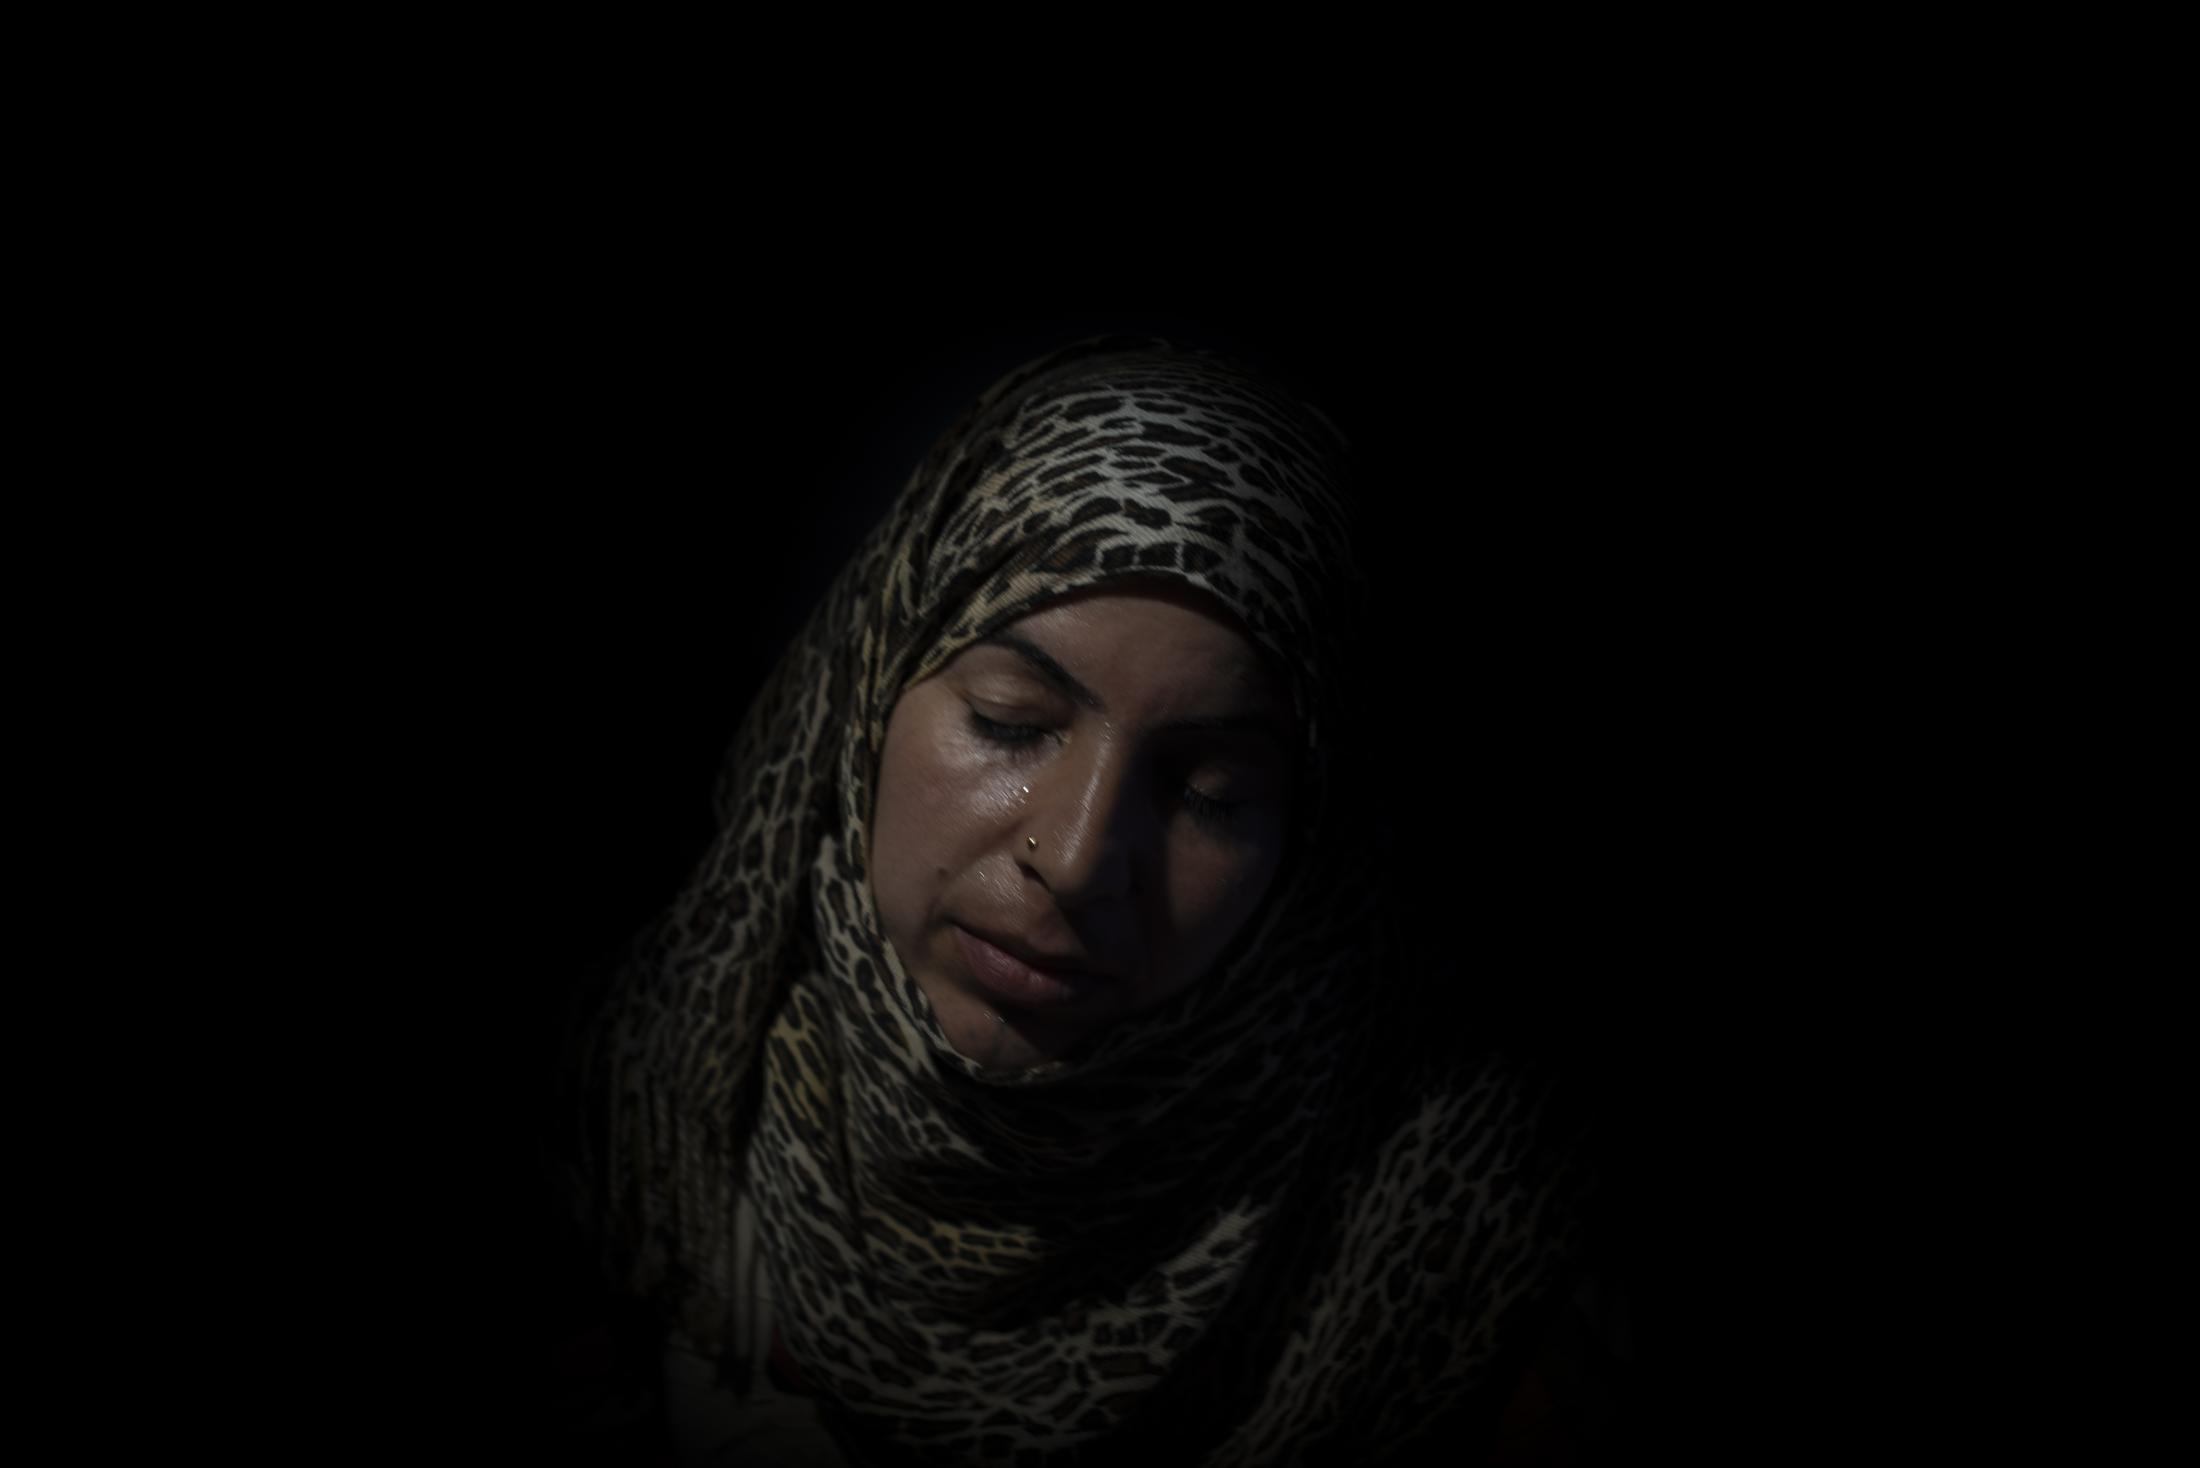 """Alia Abderrazaz 28, left Tel Tamer in October and has just arrived in Washokani refugee camp from Hassaka. This mother of four says that they have lost all their belongings. """"Erdogan would have never attacked us if he was afraid of God, but he´s not."""" After the withdrawal of US troops from northern Syria in October 2019, Turkey launched an offensive against the predominantly Kurdish areas in the northeast of the country along Islamist forces. Calls for war crimes investigations into the conduct of Ankara-backed militias are mounting ever since. (Andoni Lubaki / Euskal Fondoa)"""